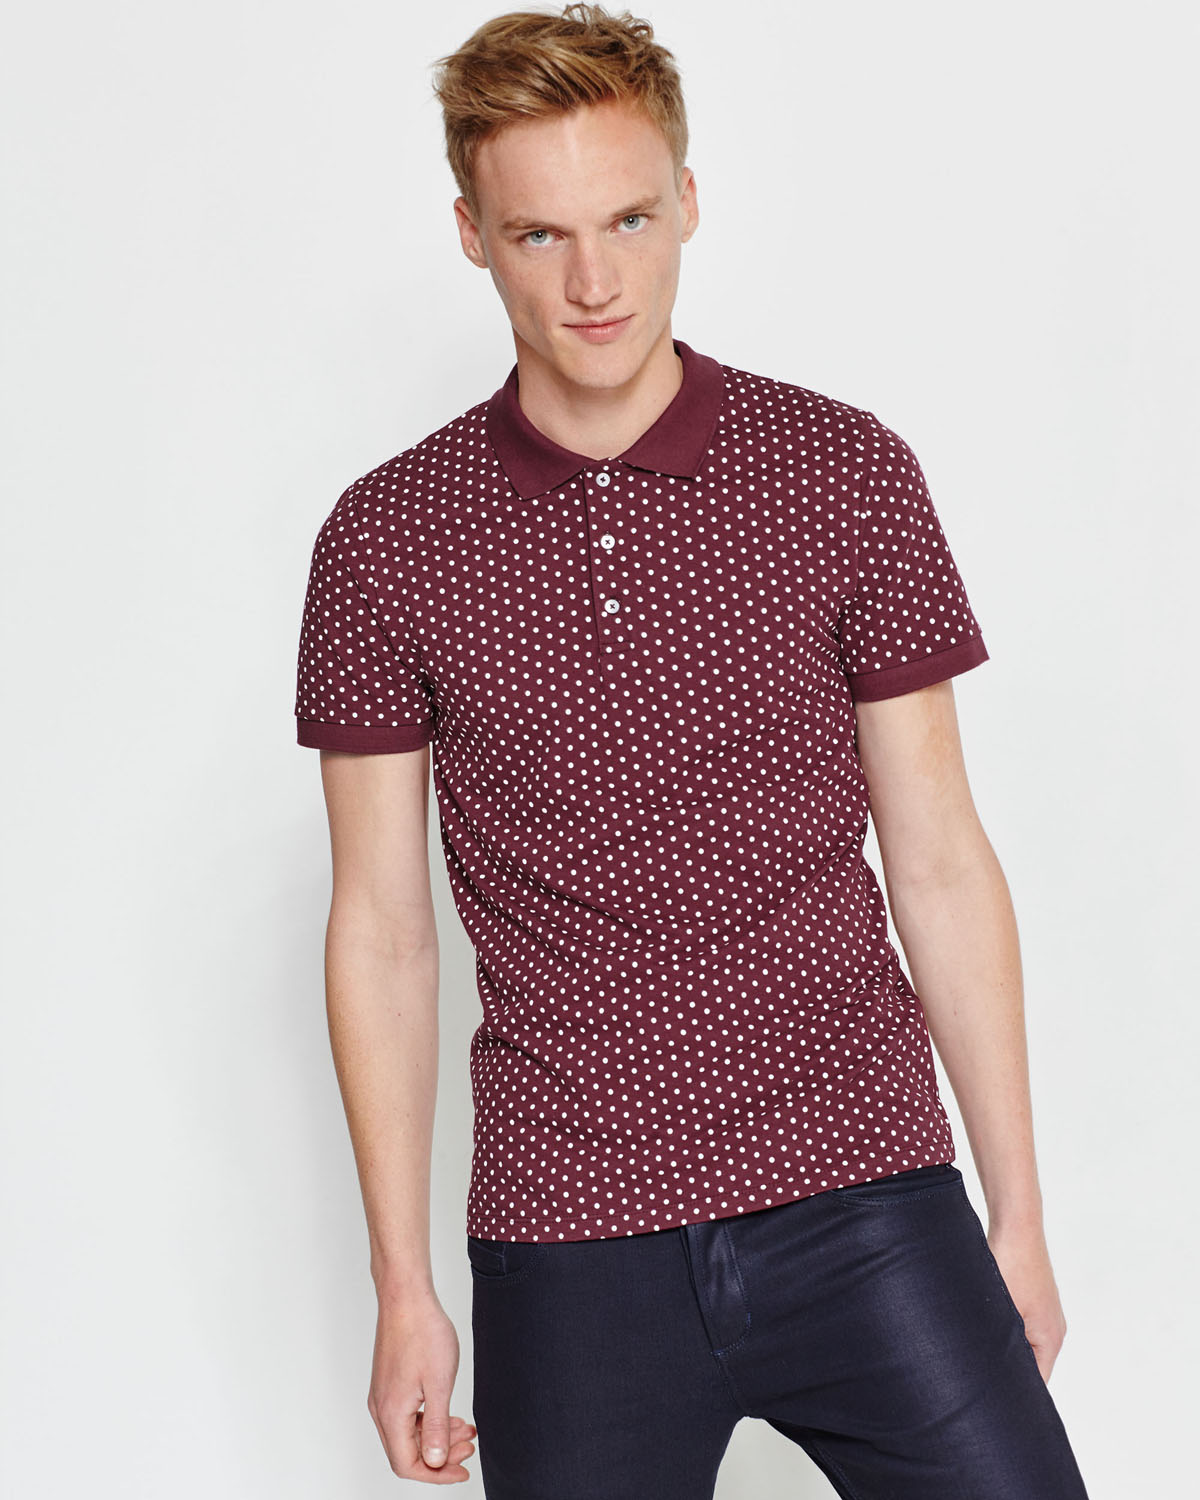 T SHIRT POLO À POIS HOMME | 78942219 WE Fashion